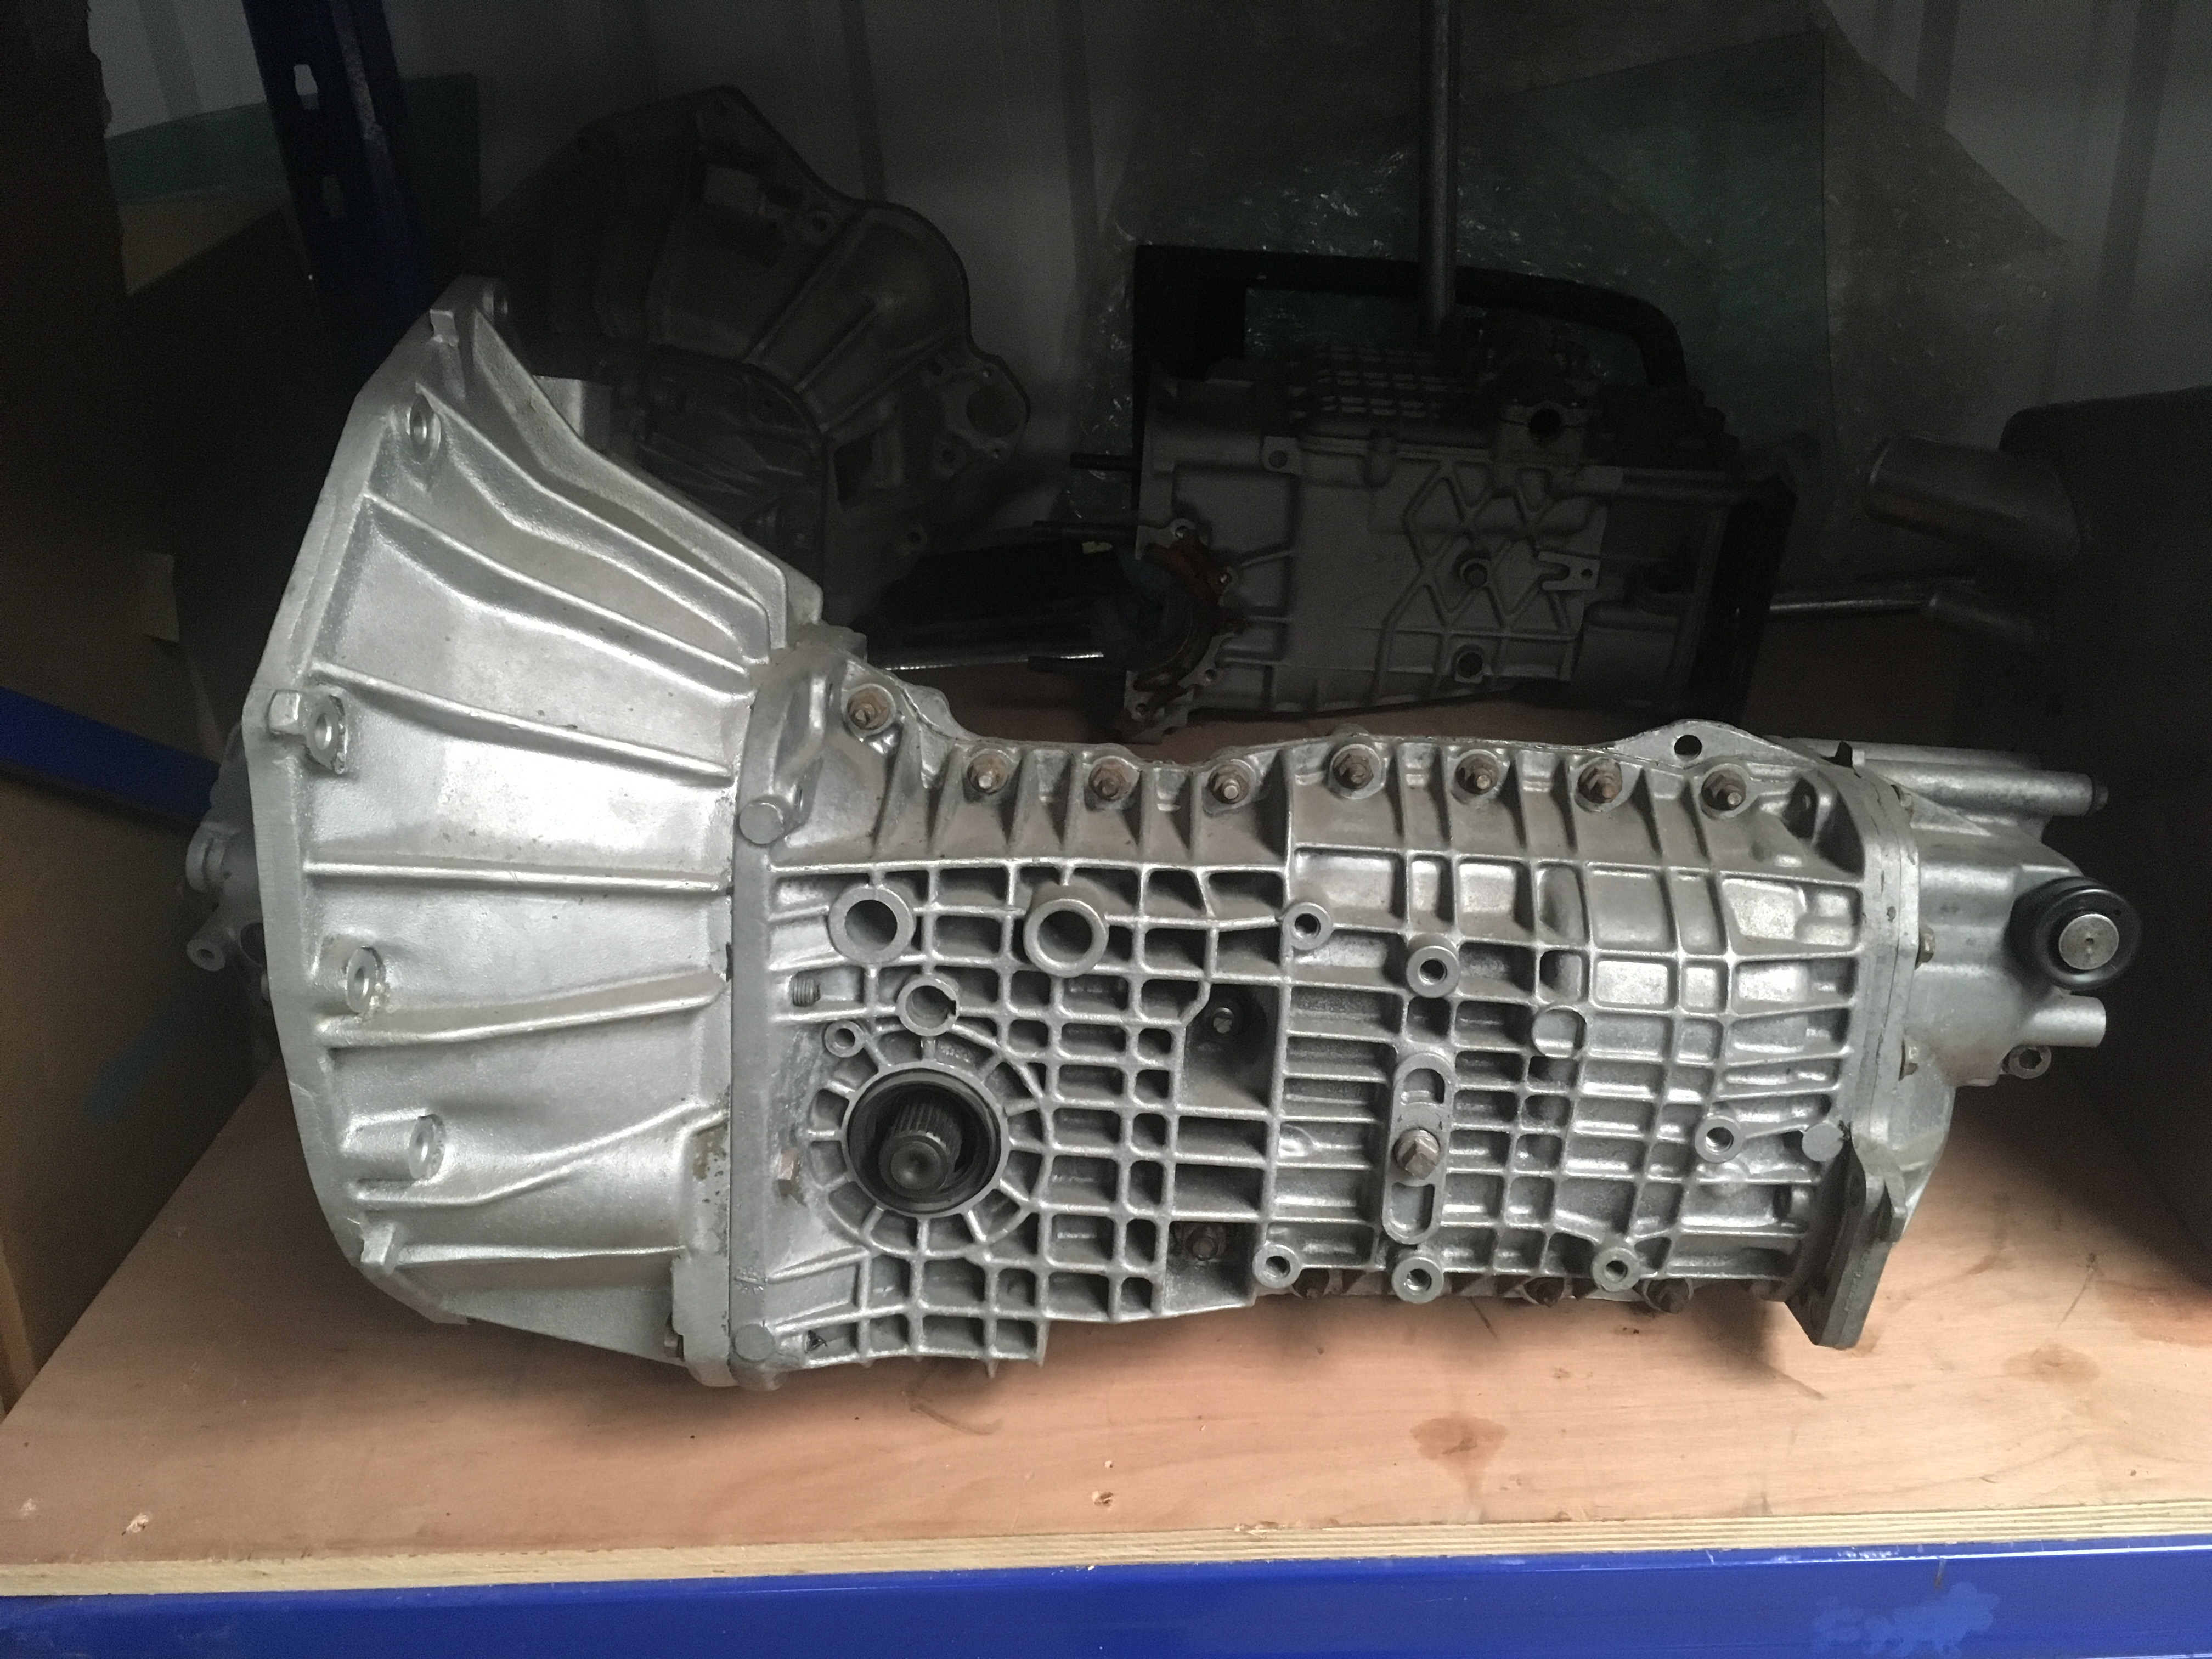 Lotus Esprit Renault UN1 Gearbox finished and ready for stock at Esprit Engineering - Gearbox Rebuilding Service - V8 S4S S4 SE X180